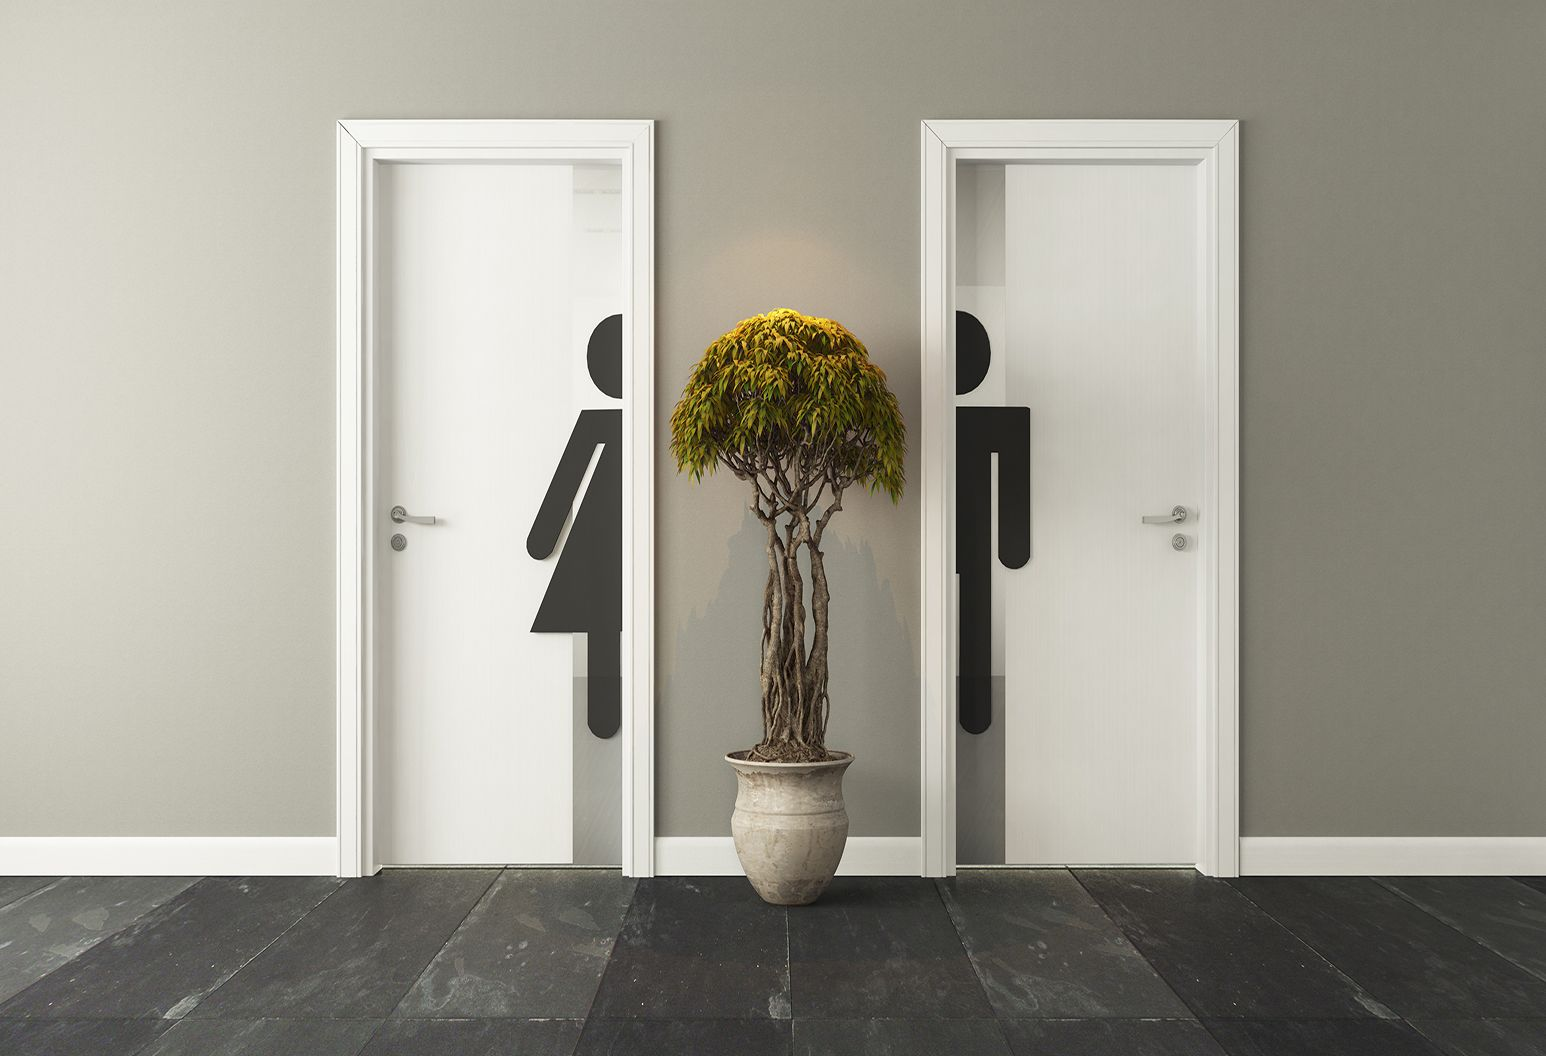 Two white bathroom doors are closed, one with half a female figure on it, the other with half a male. A tall plant sits between the doors. Floors are dark gray and walls are light gray.